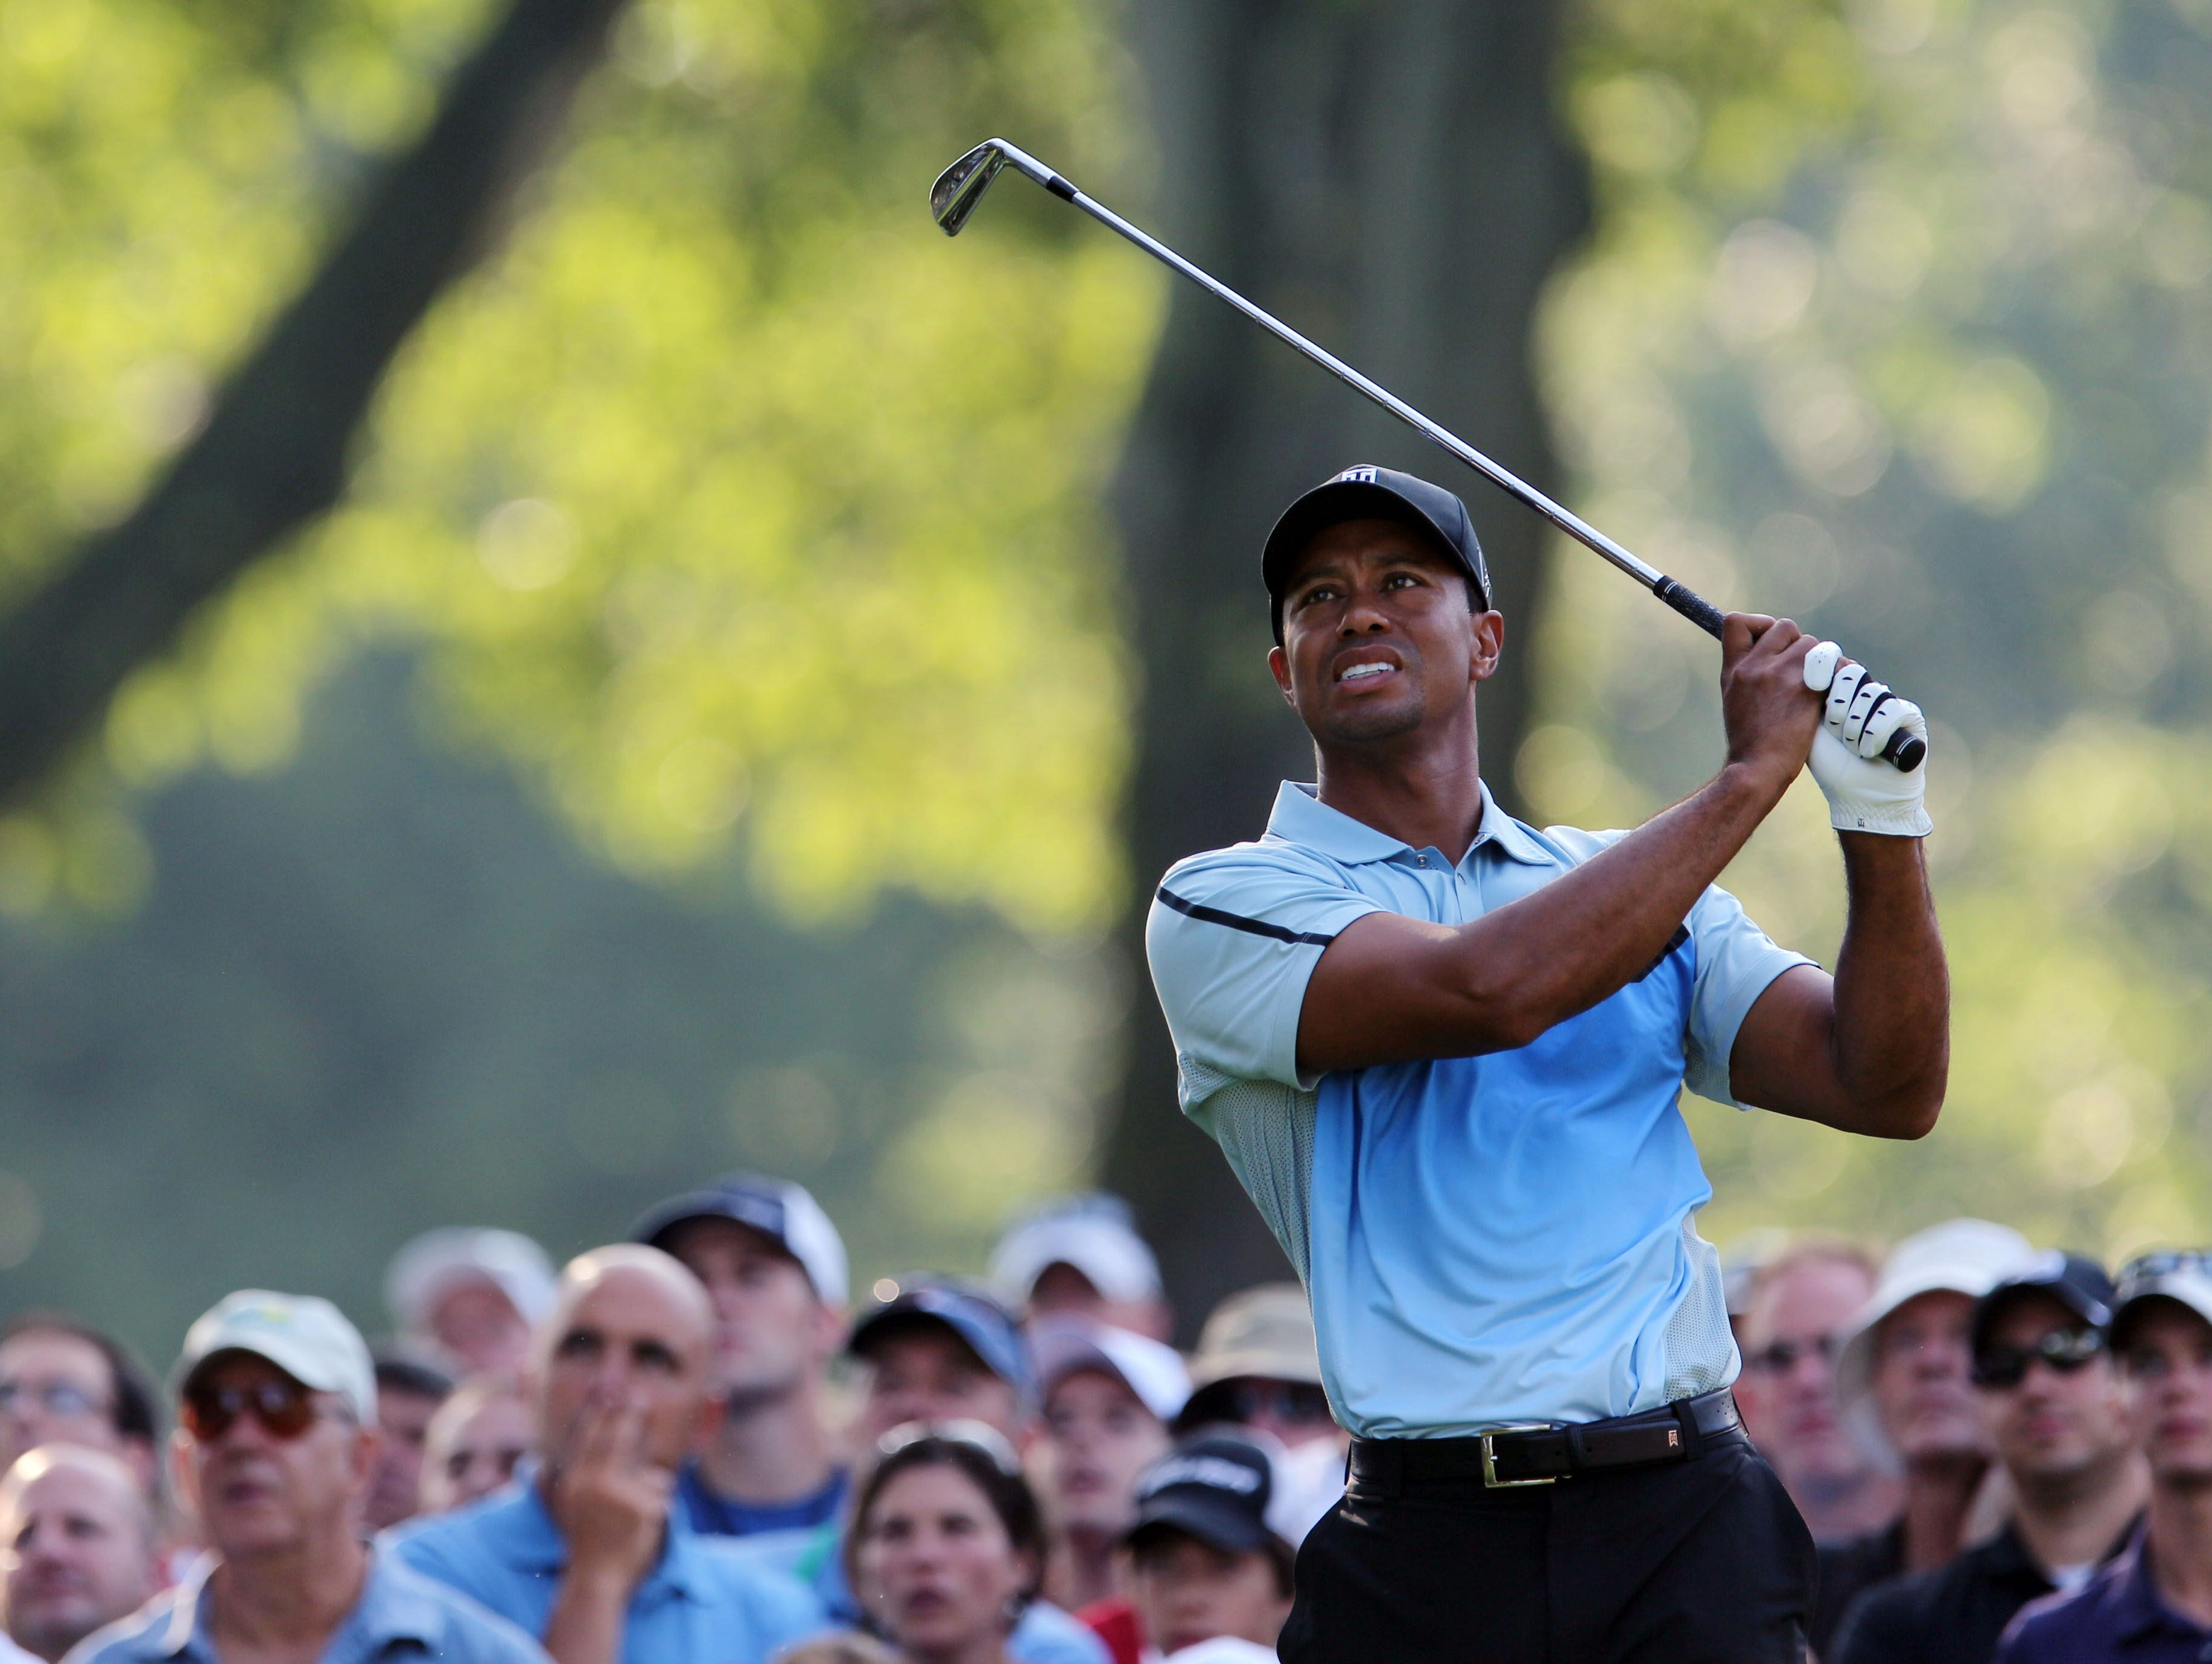 Tiger Woods tees off on the 11th hole during the first round of the 95th PGA Championship at Oak Hill Country Club.